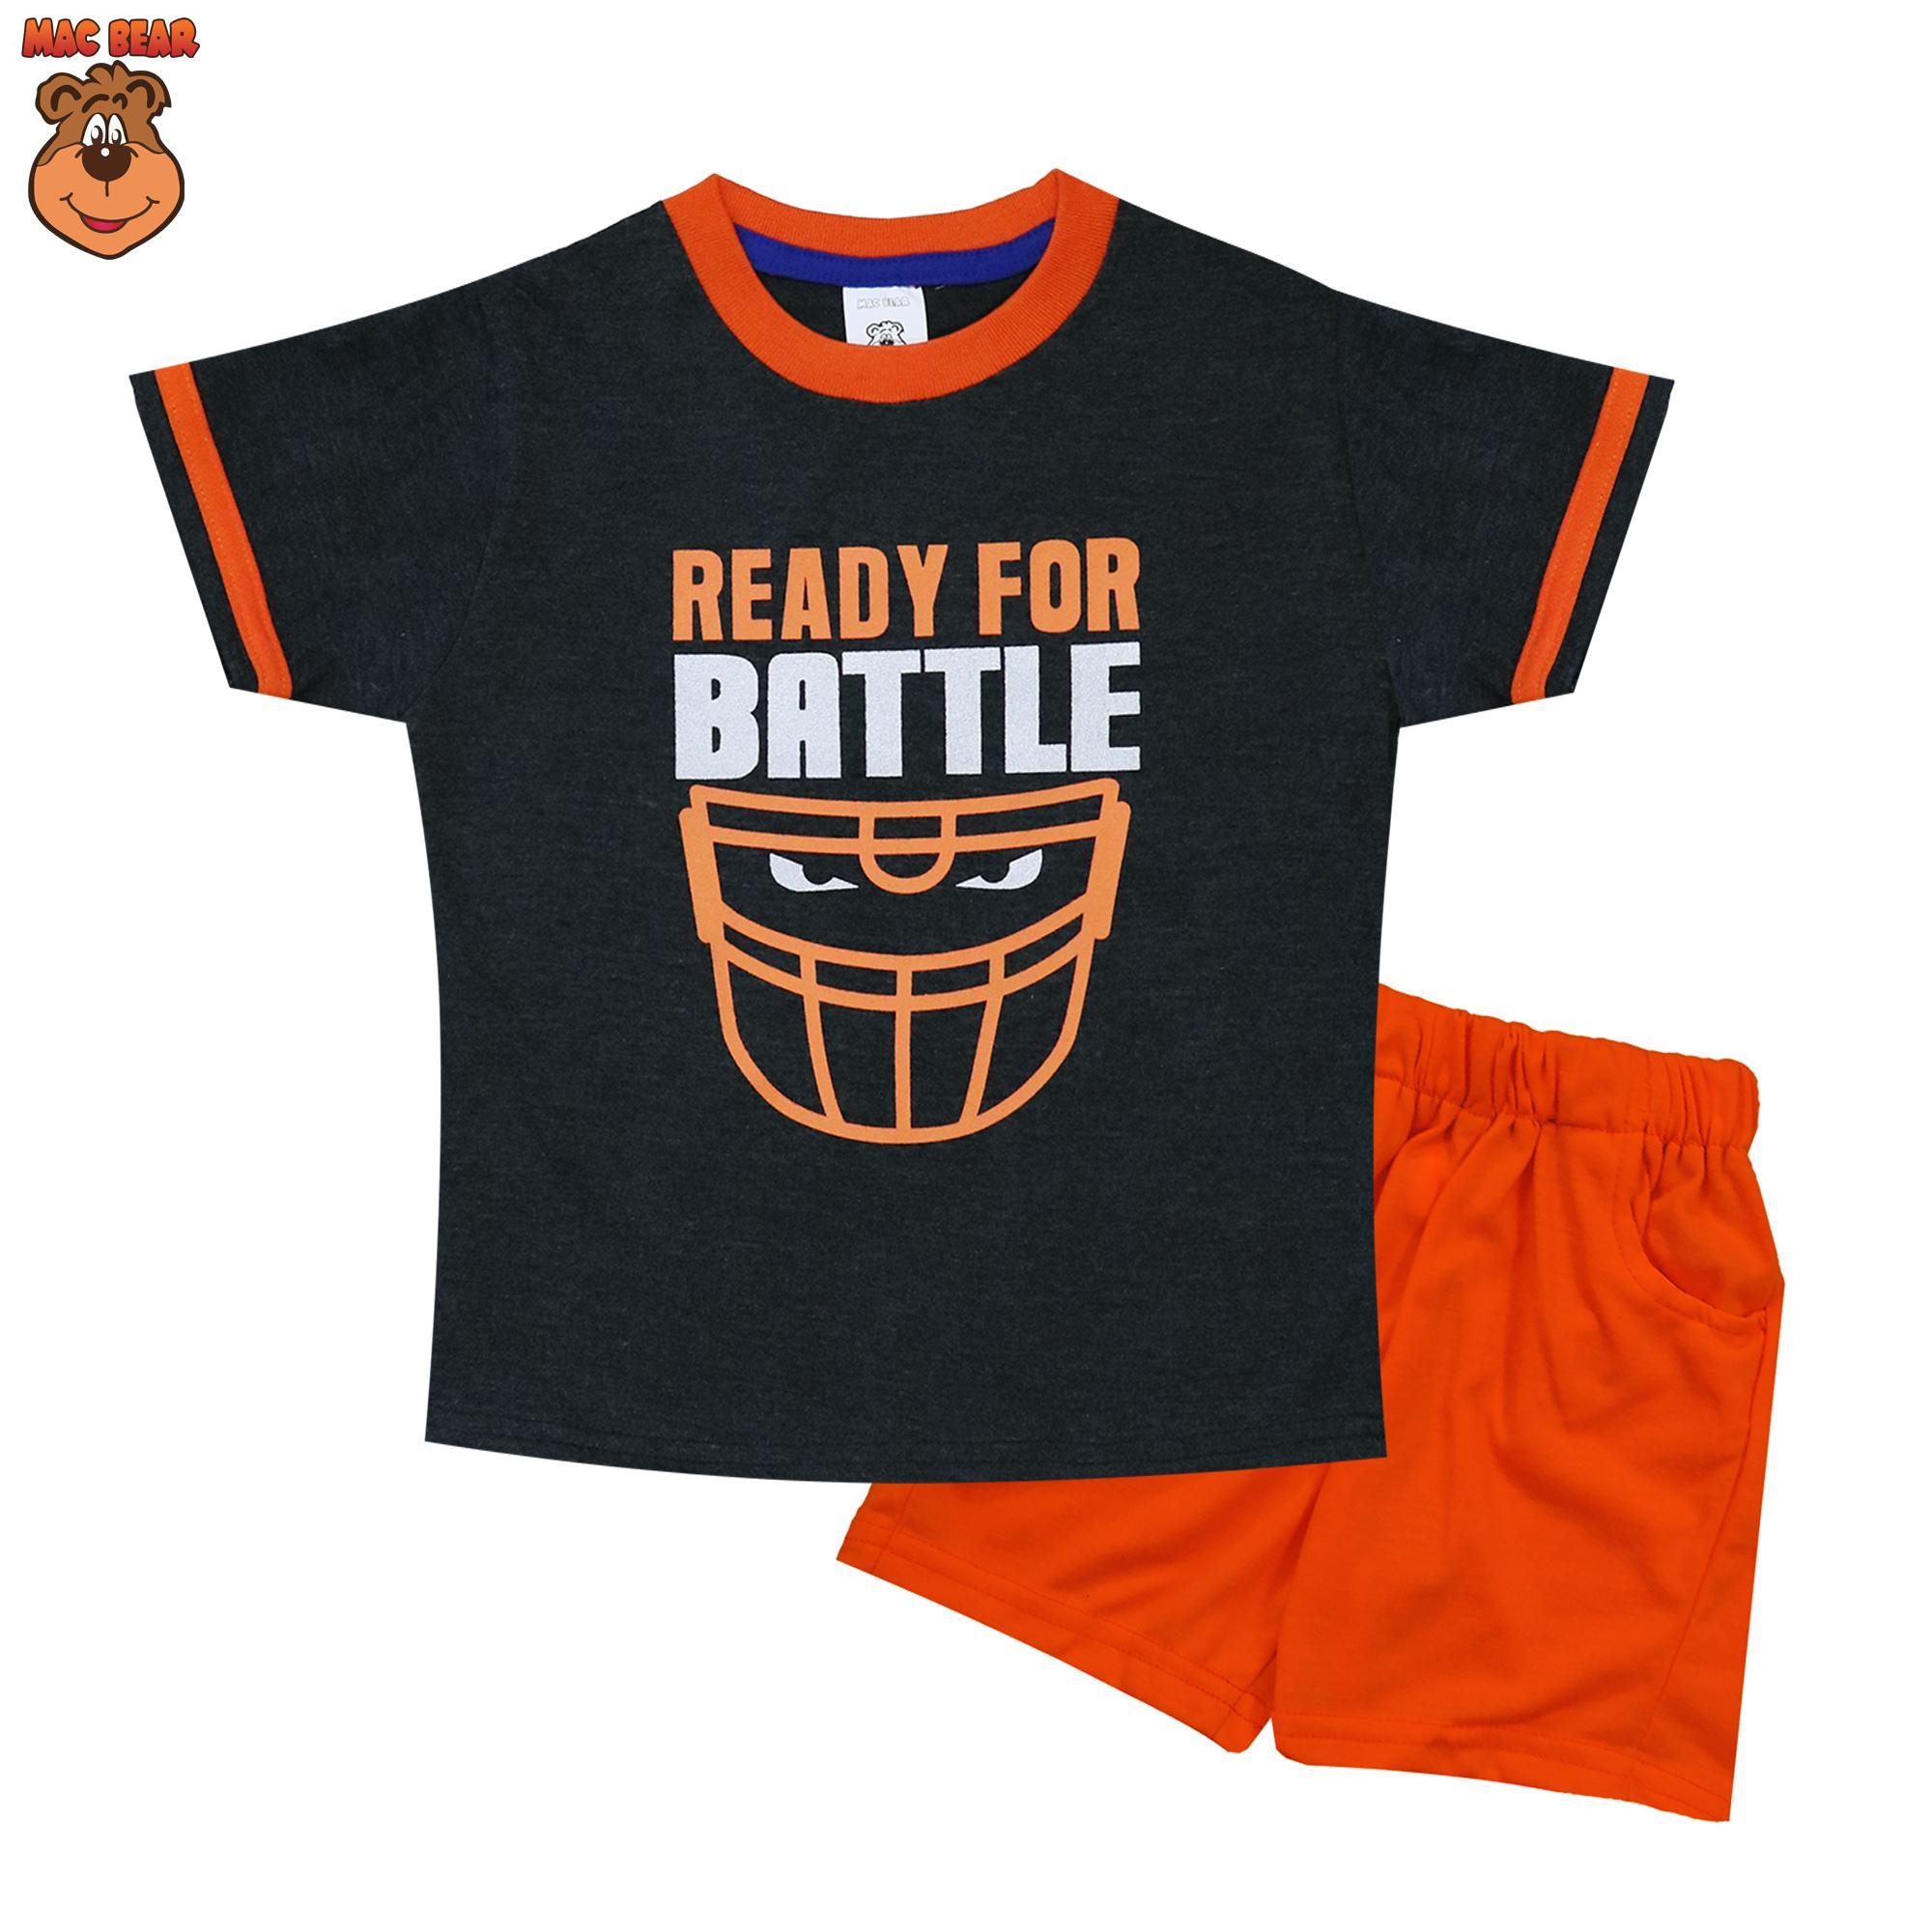 MacBear Kids Baju Anak Setelan Ready For Battle Sablon Foil Silver